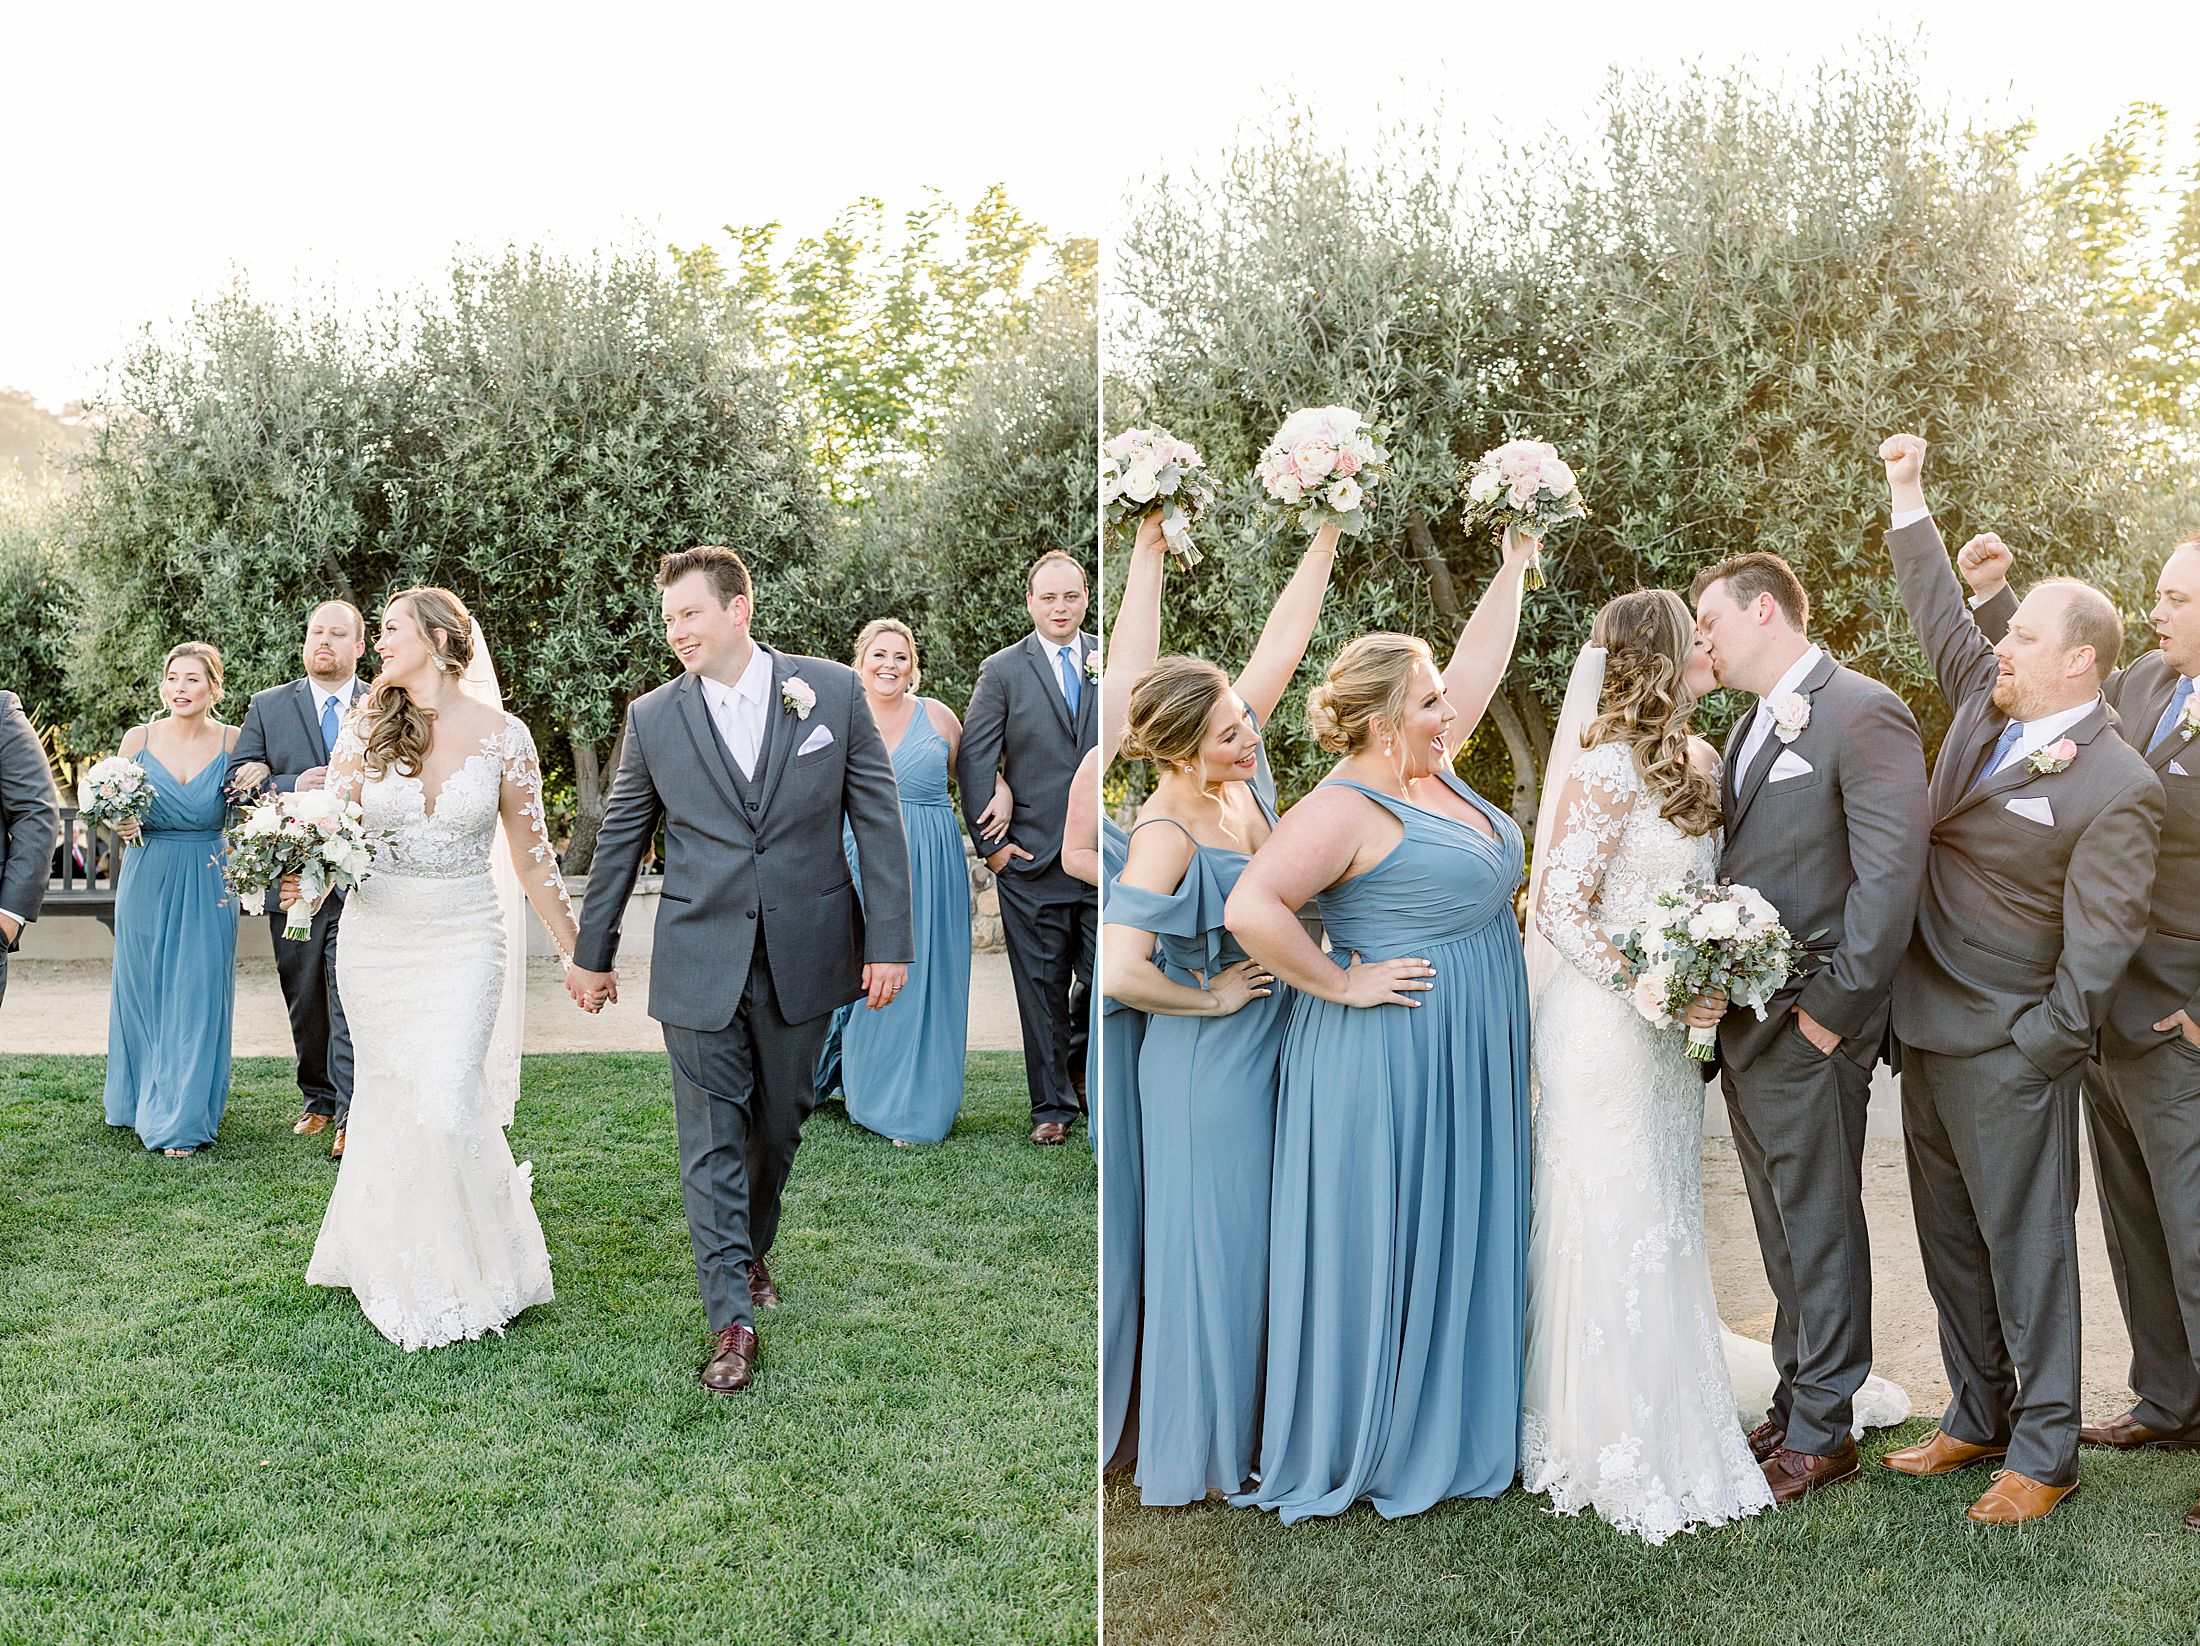 Clos LaChance Winery Wedding - Ashley Baumgartner - Kat & Kurt - Morgan Hill Wedding - Winery Wedding - Bay Area Photographer - Sacramento Wedding Photographer_0031.jpg